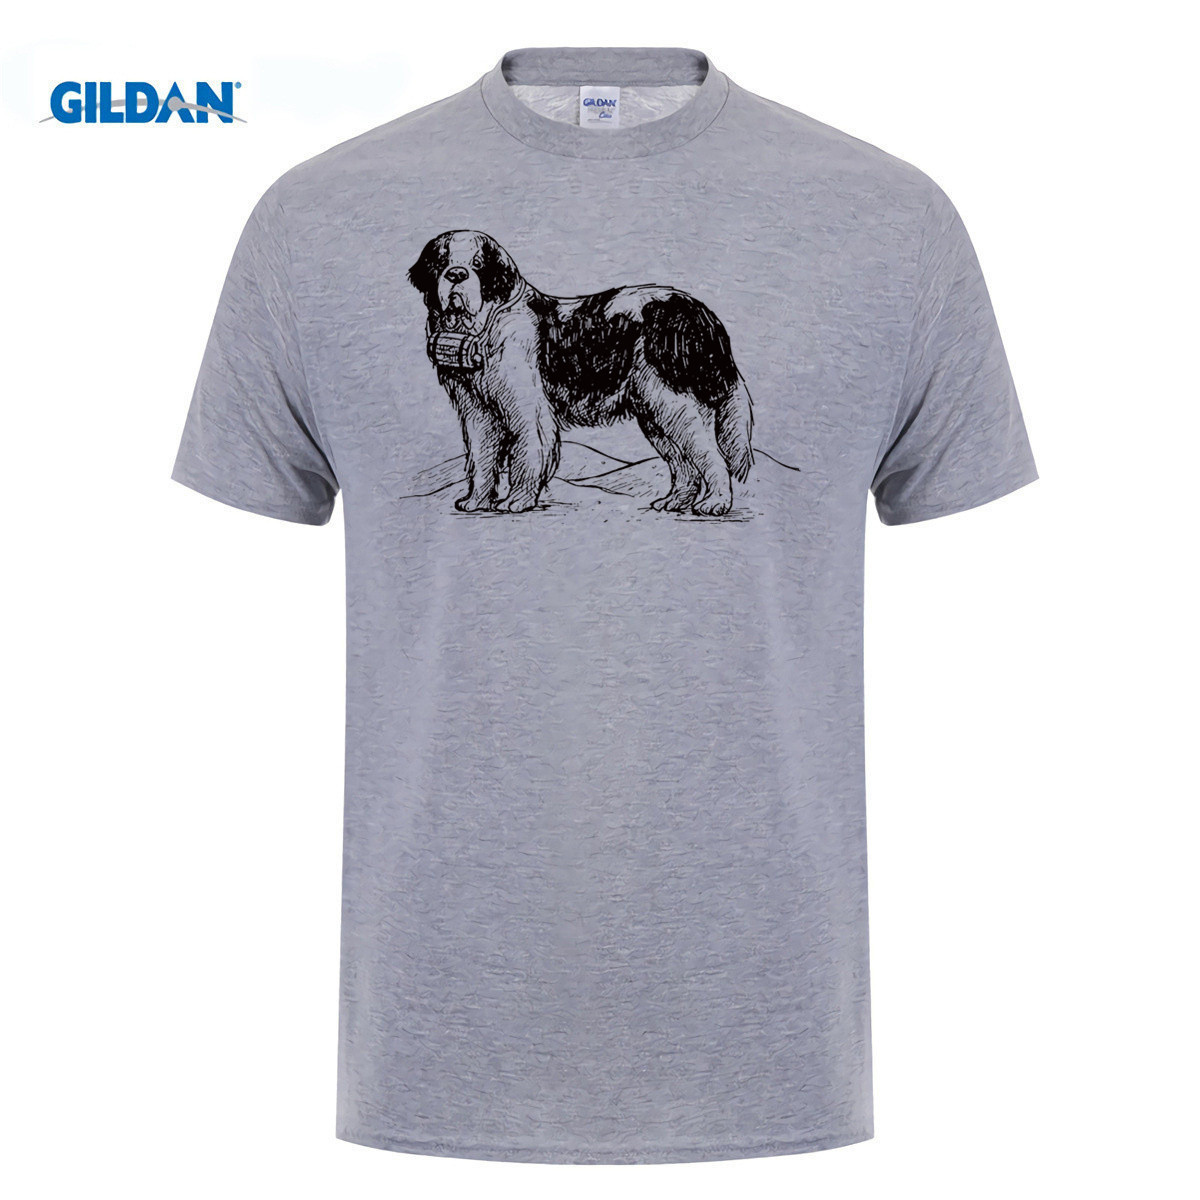 GILDAN Saint St Bernard Dog Breed T Shirt for men women boys girls